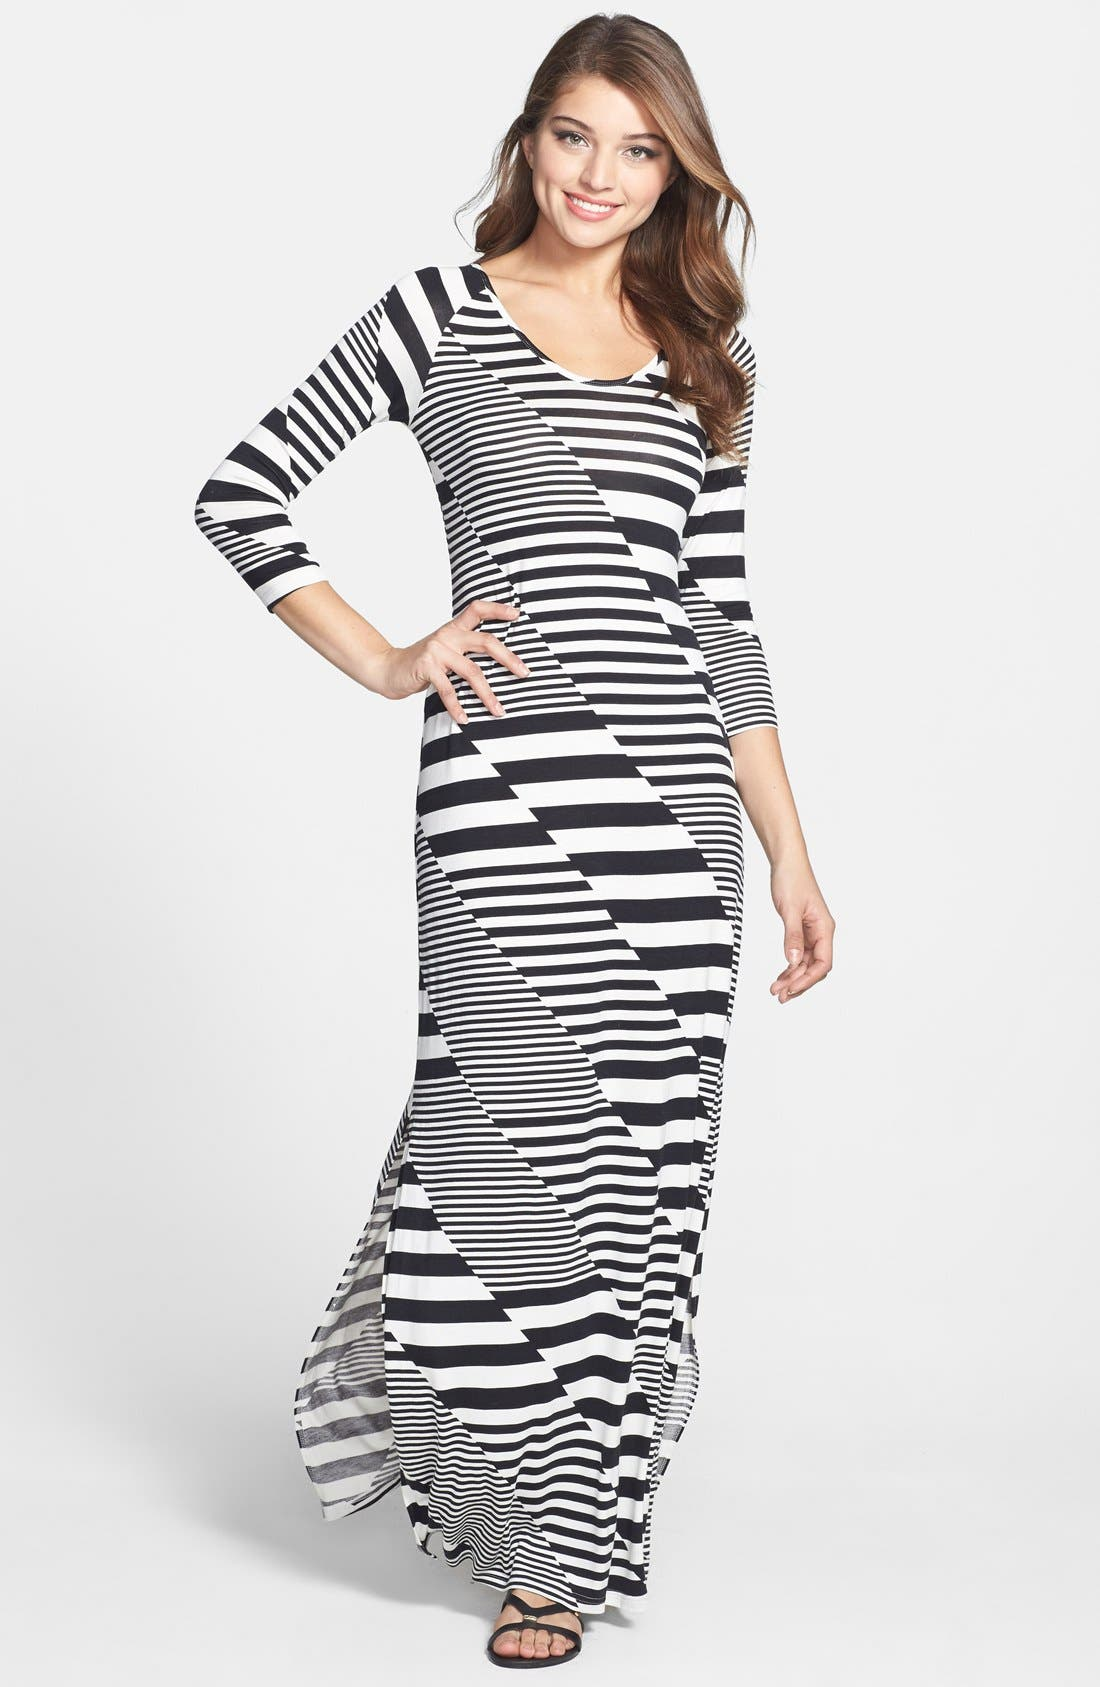 Alternate Image 1 Selected - Jessica Simpson 'Rowan' Stripe Maxi Dress